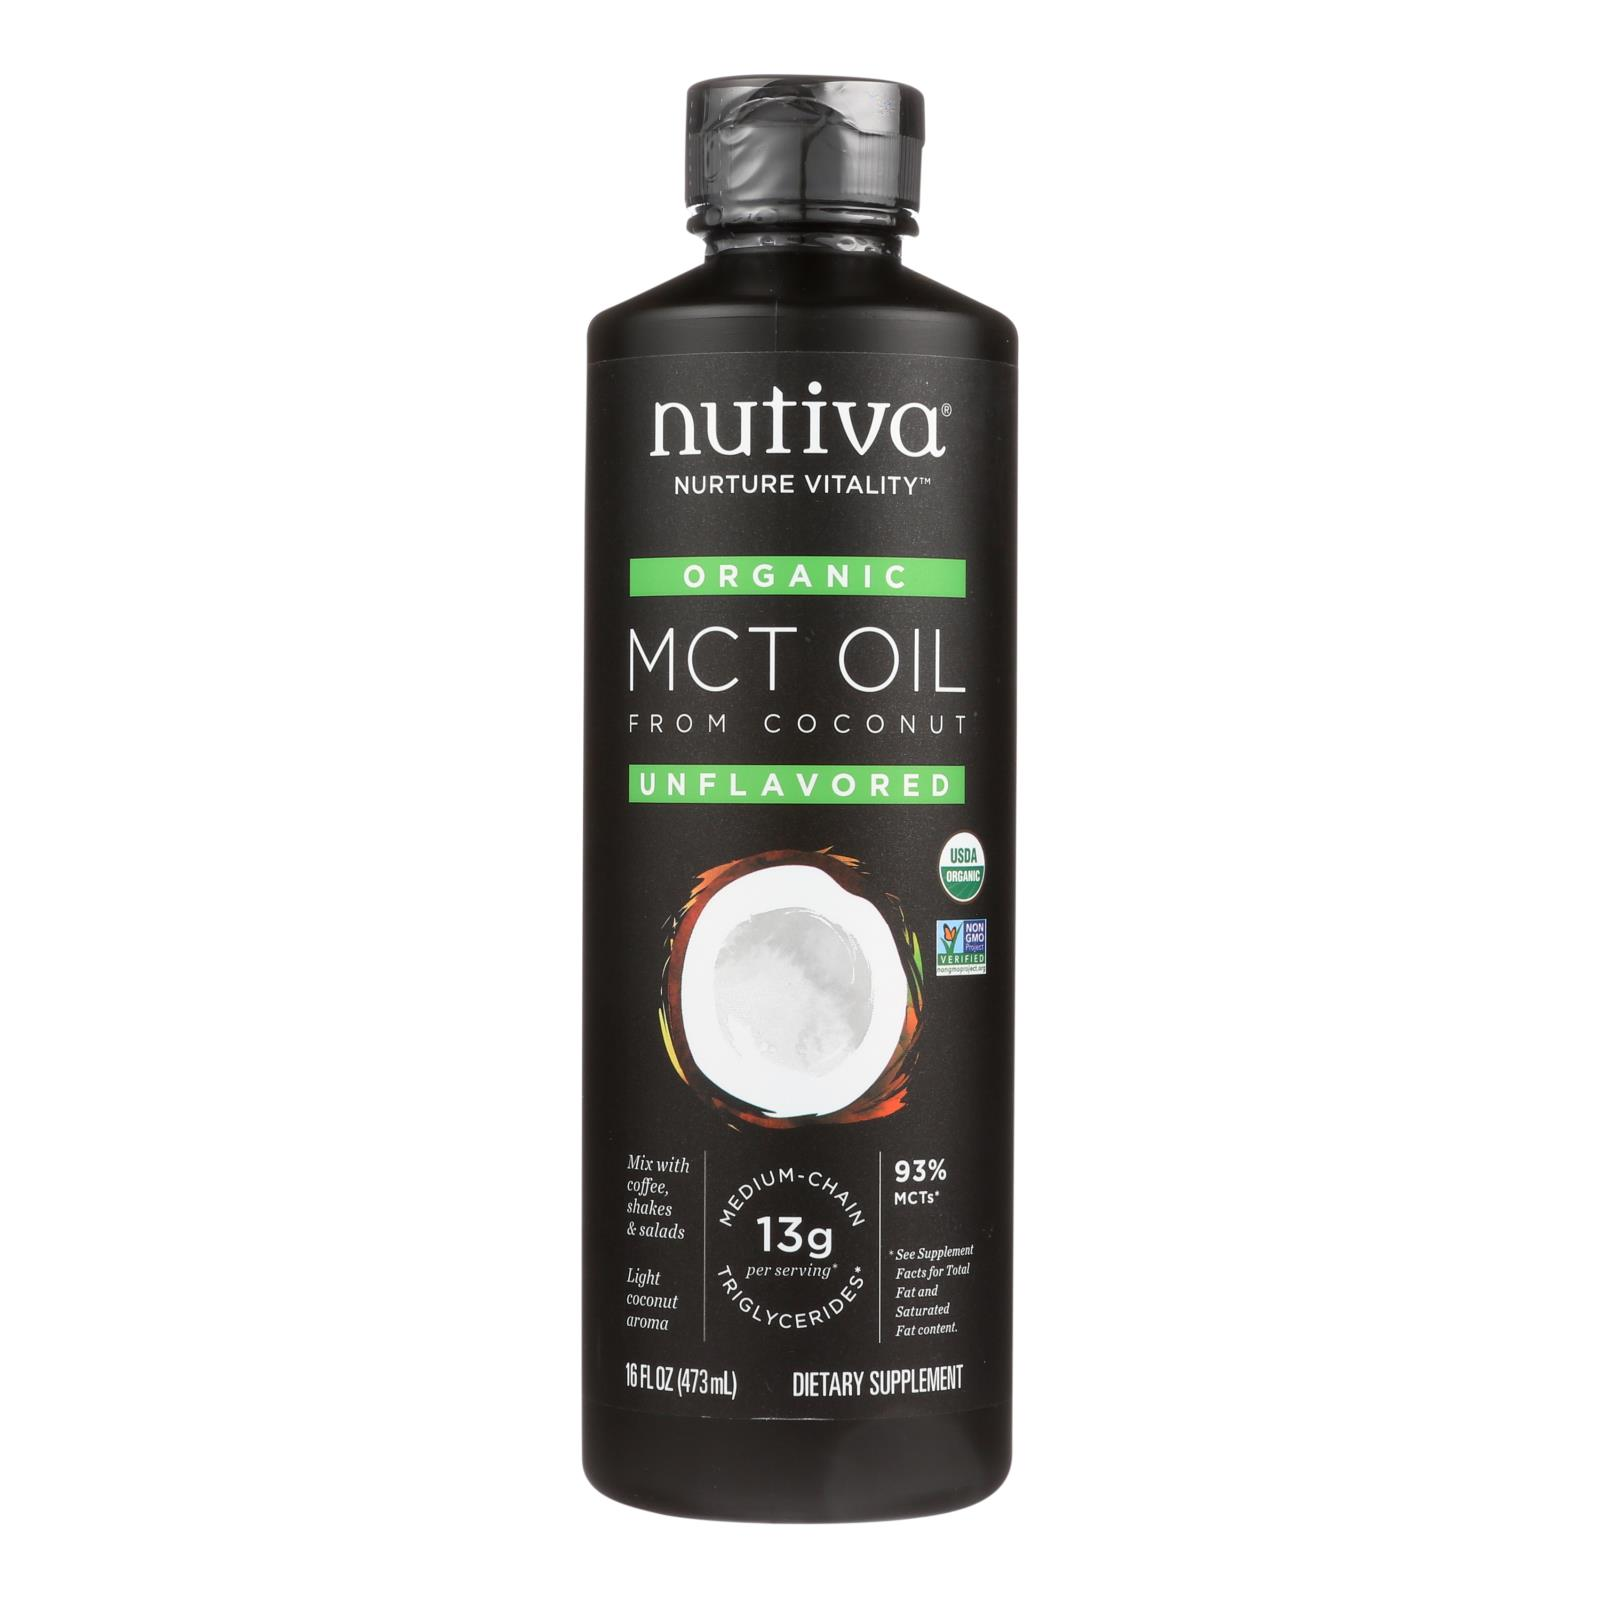 Nutiva 100% Organic Mct Oil - From Coconut - Unflavored ...